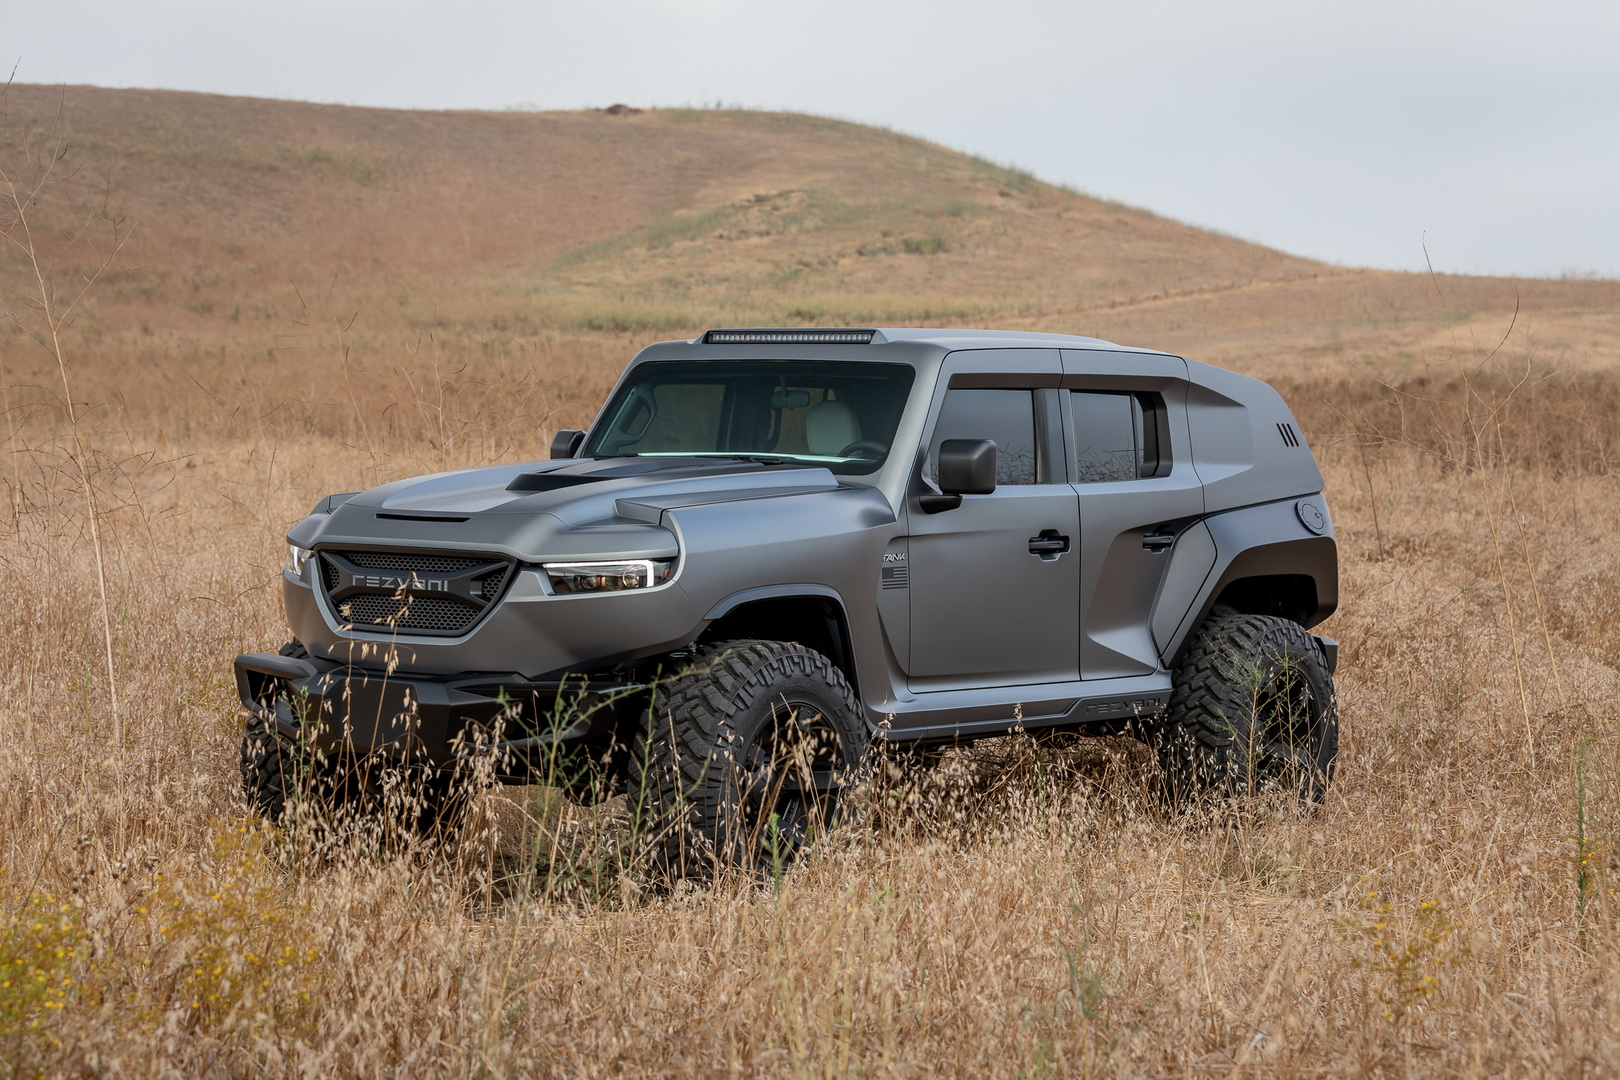 2020 Rezvani Tank Can Be Optioned With Hellcat V8 Engine Emp Protection Autoevolution